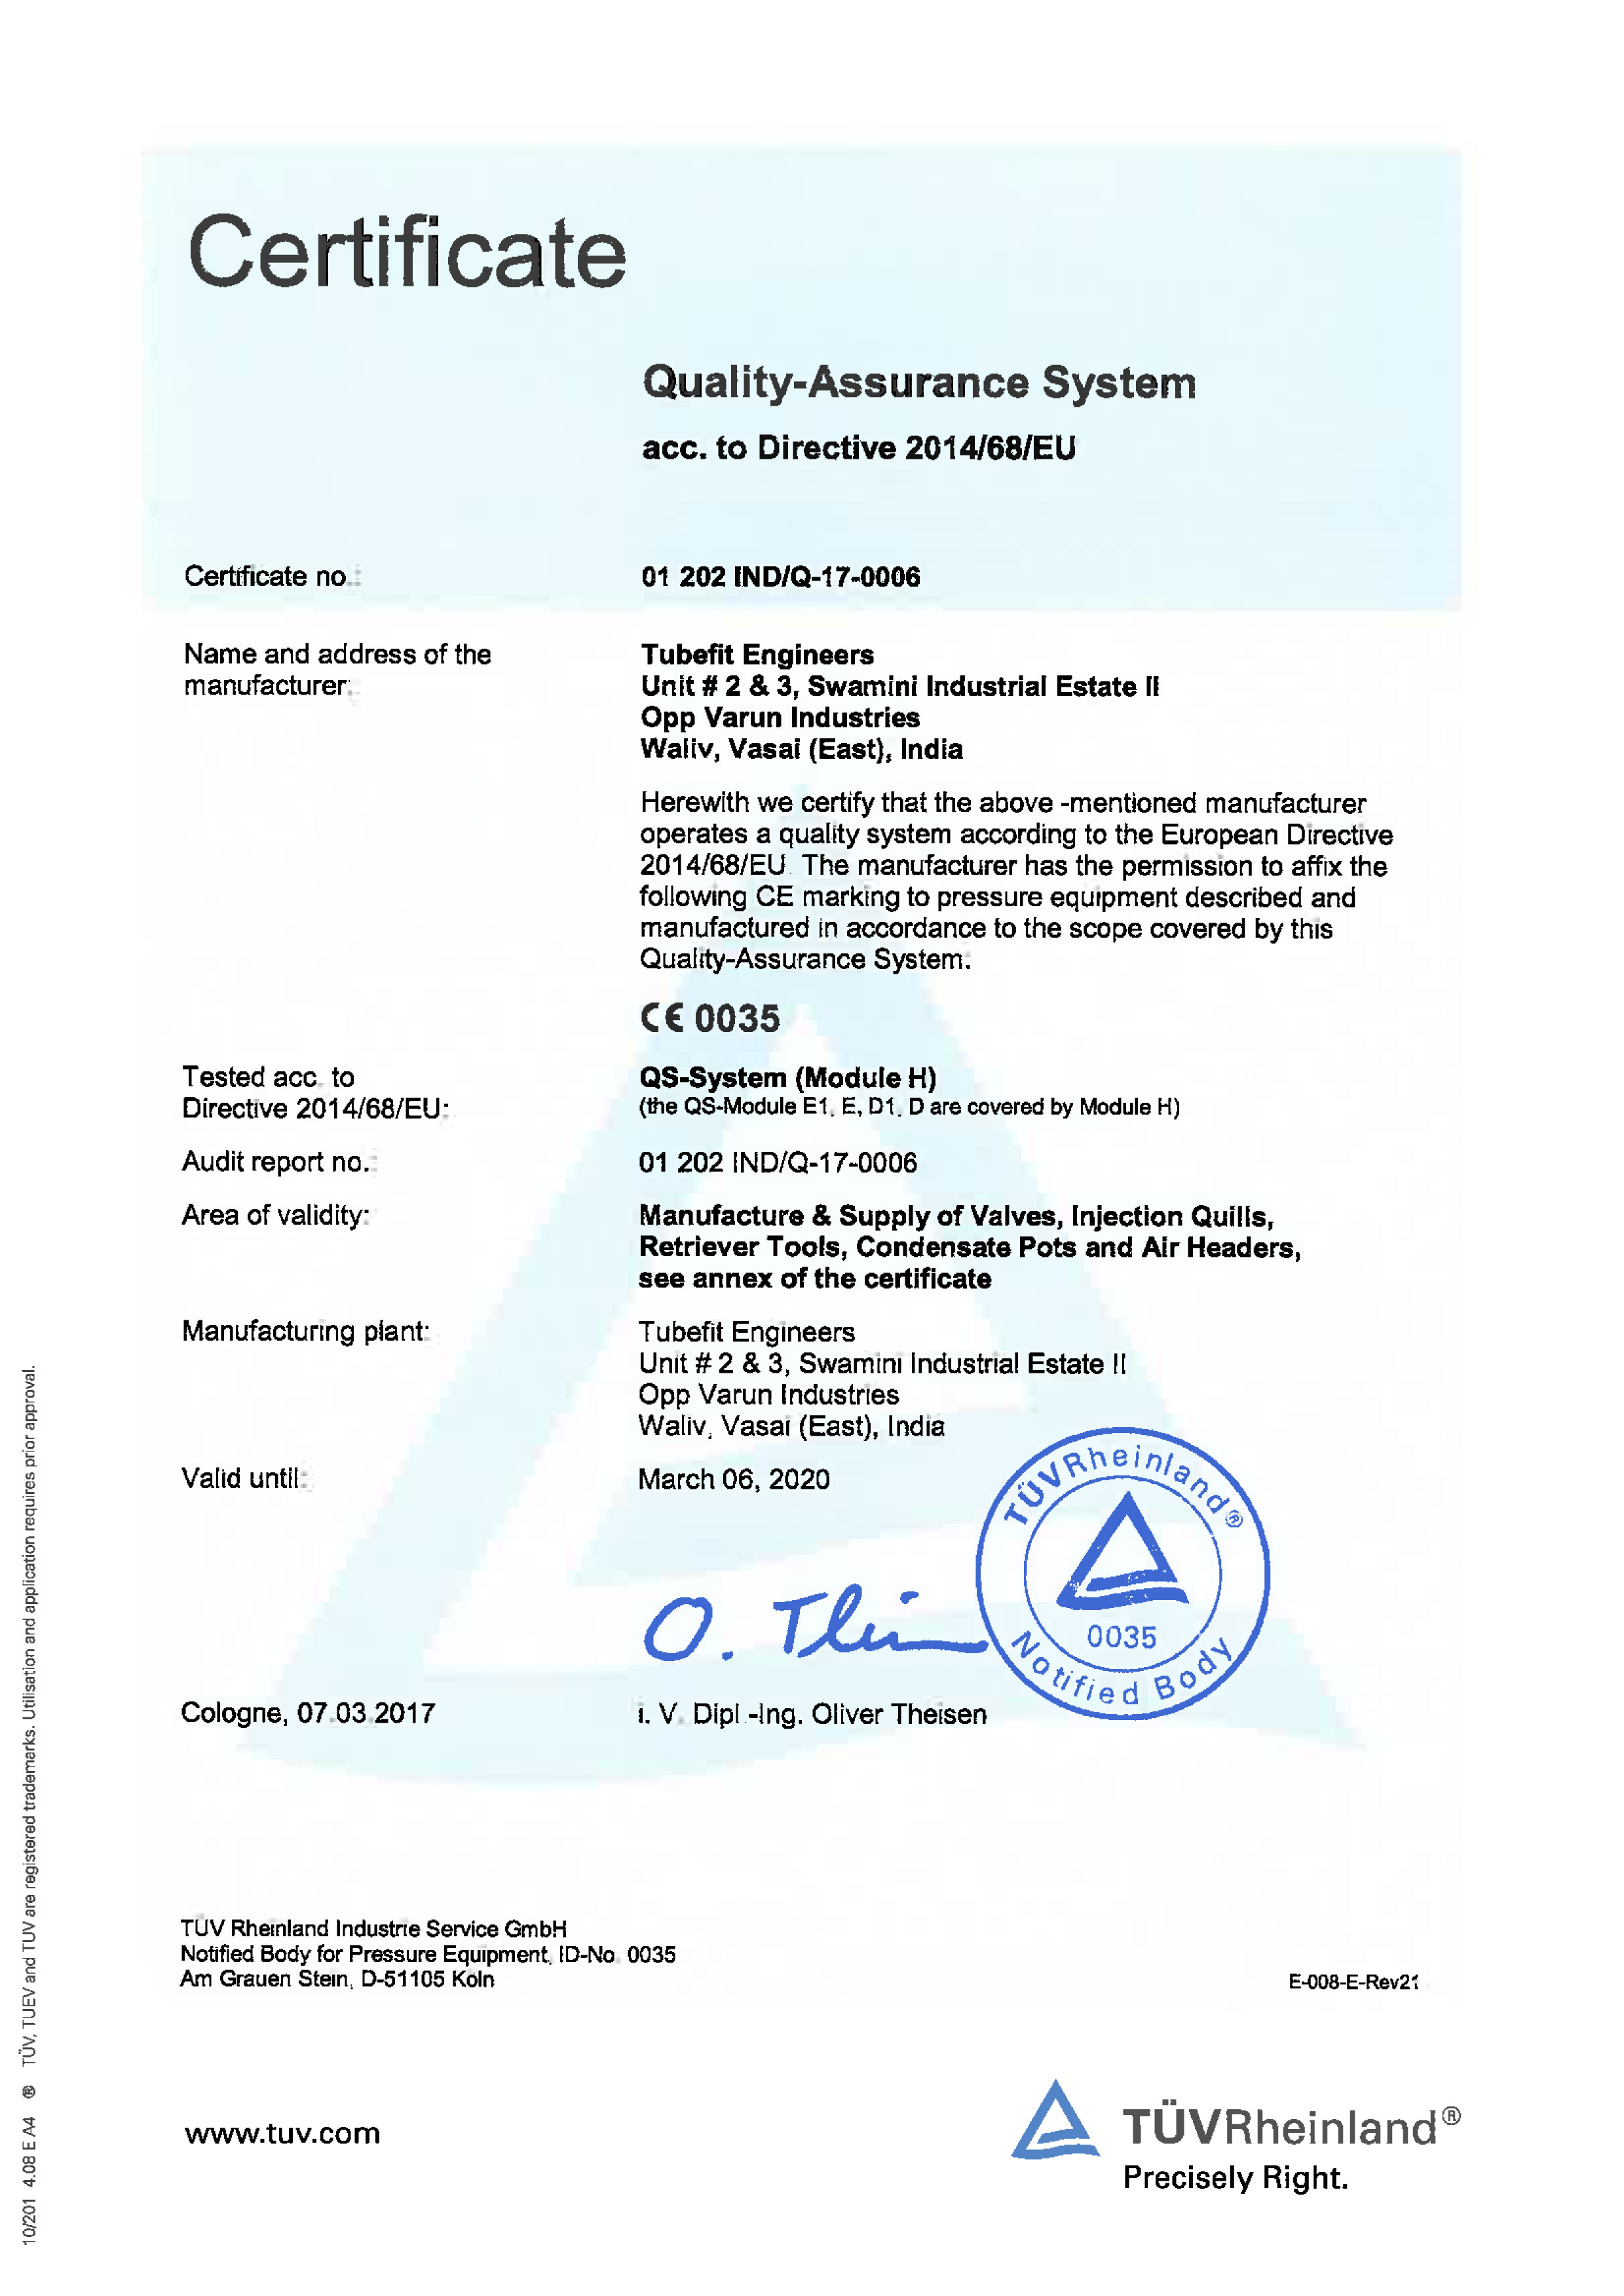 Quality-Assurance System acc. to Directive 2014/68/EU